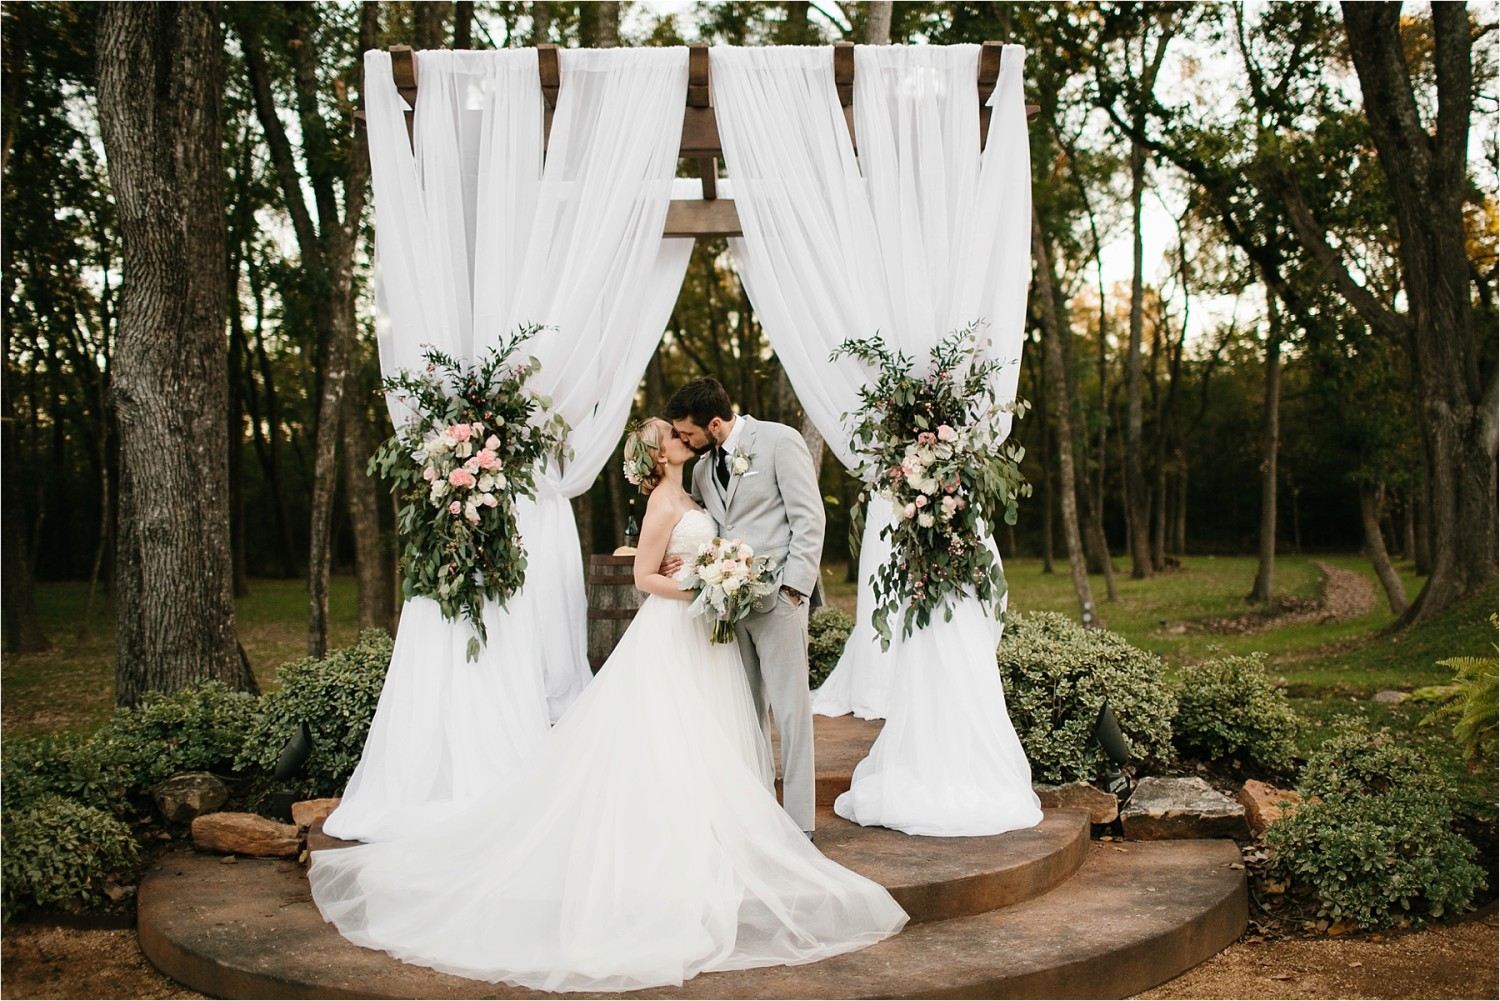 brad-lara-__-a-grey-and-blush-pink-intimate-wedding-at-hidden-waters-event-center-in-waxahachie-tx-by-north-texas-wedding-photographer-rachel-meagan-photography-_-069